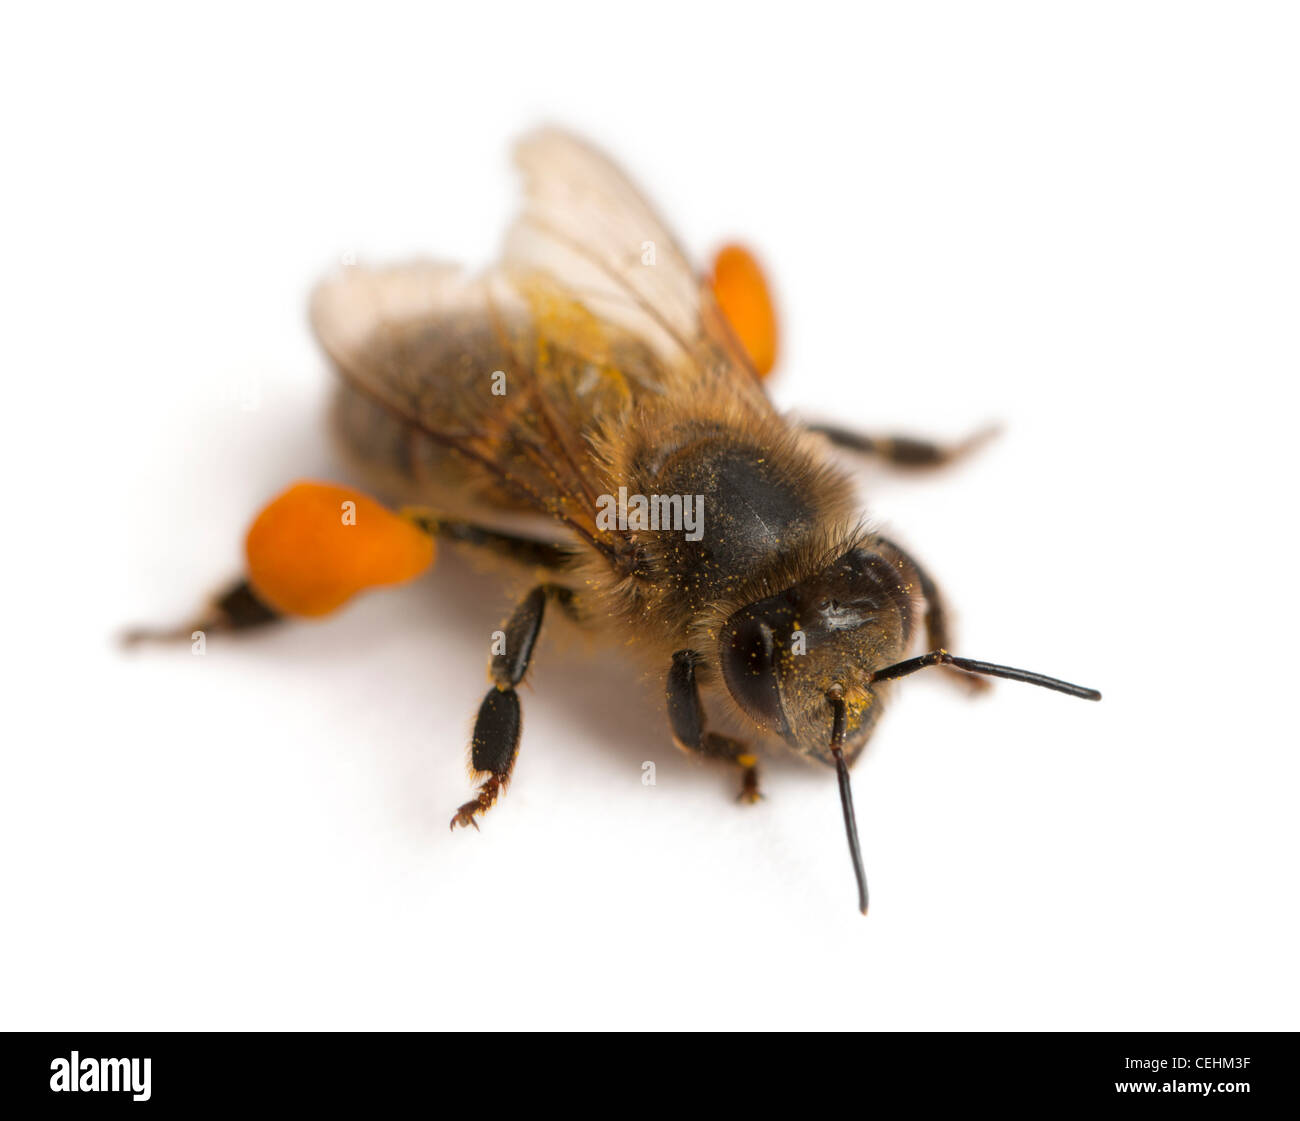 Western honey bee or European honey bee, Apis mellifera, in front of white background - Stock Image